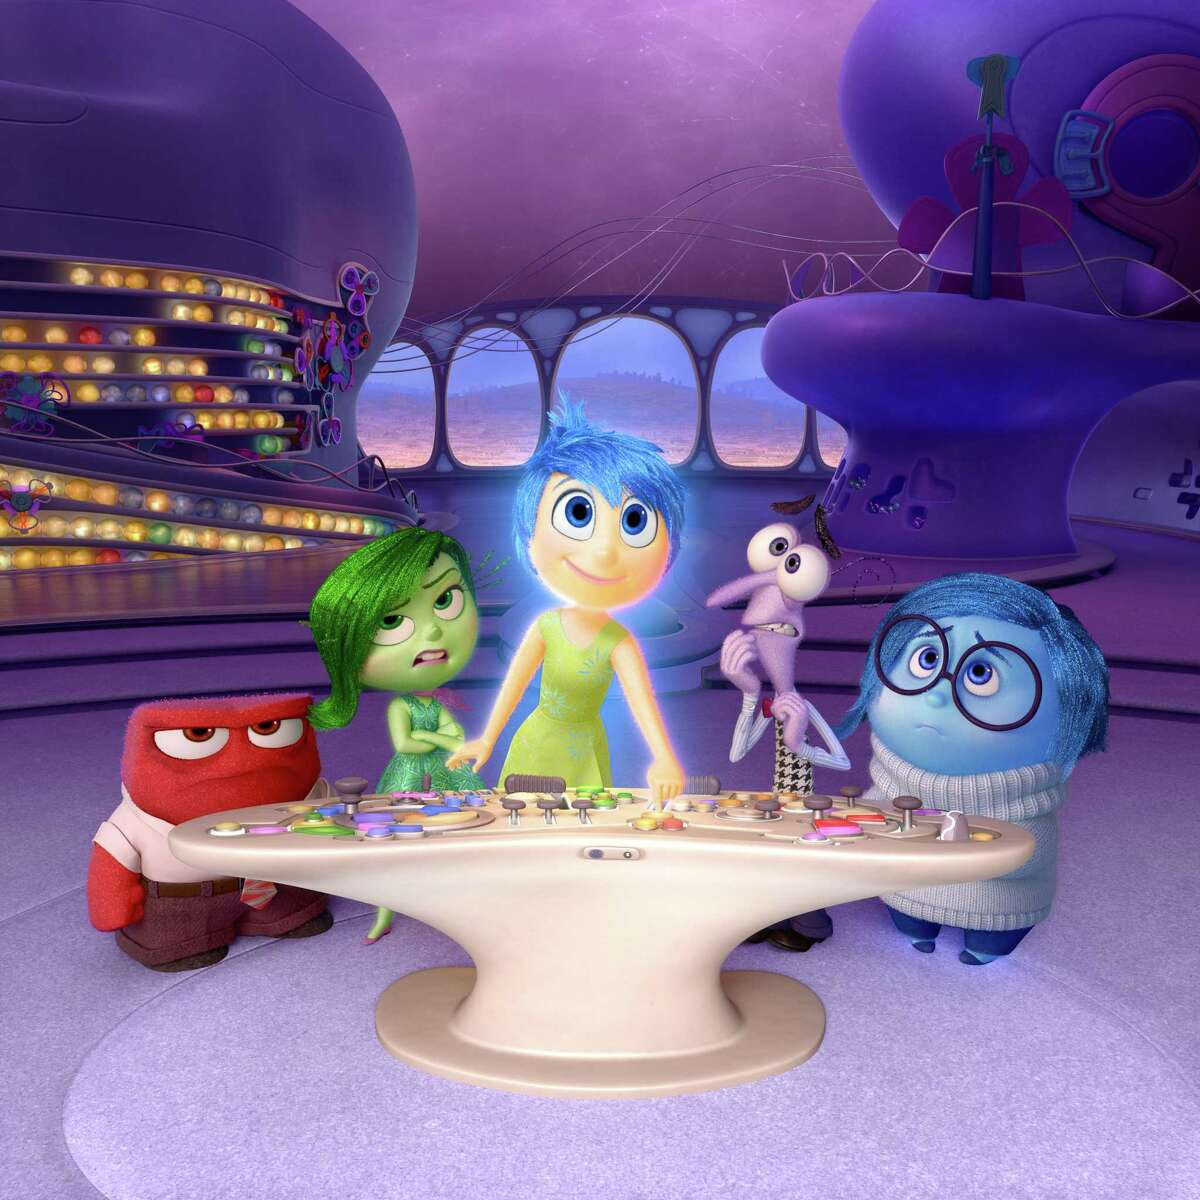 """In this file image released by Disney-Pixar, characters, from left, Anger, voiced by Lewis Black, Disgust, voiced by Mindy Kaling, Joy, voiced by Amy Poehler, Fear, voiced by Bill Hader, and Sadness, voiced by Phyllis Smith appear in a scene from """"Inside Out."""""""